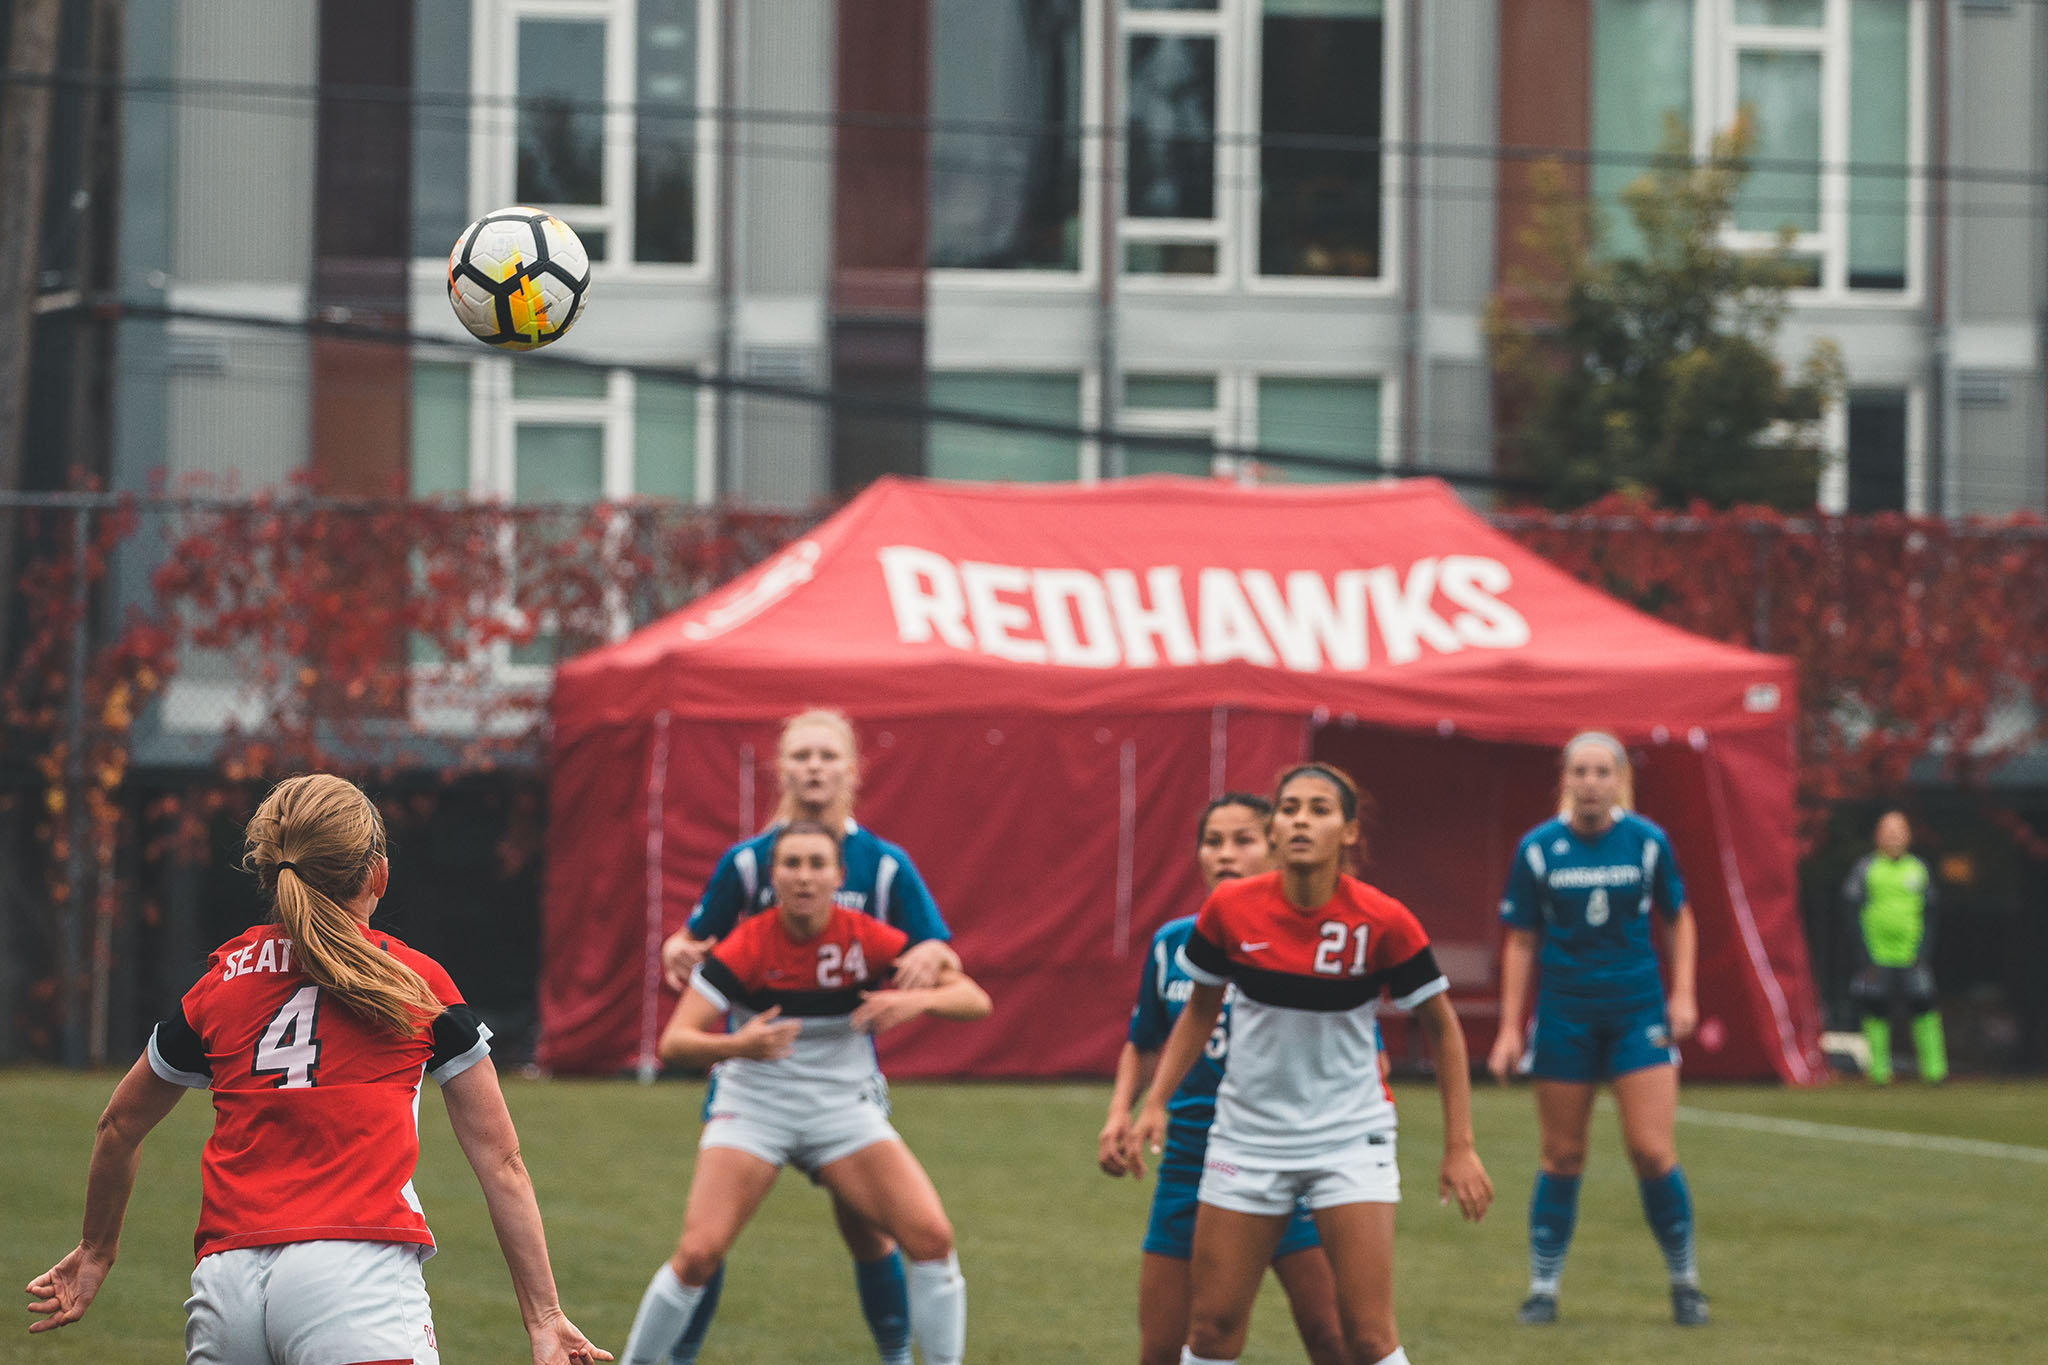 Senior Hannah Carrothers throws the ball in to play during her last home game as a Seattle University Redhawk on Sunday, October 21st.